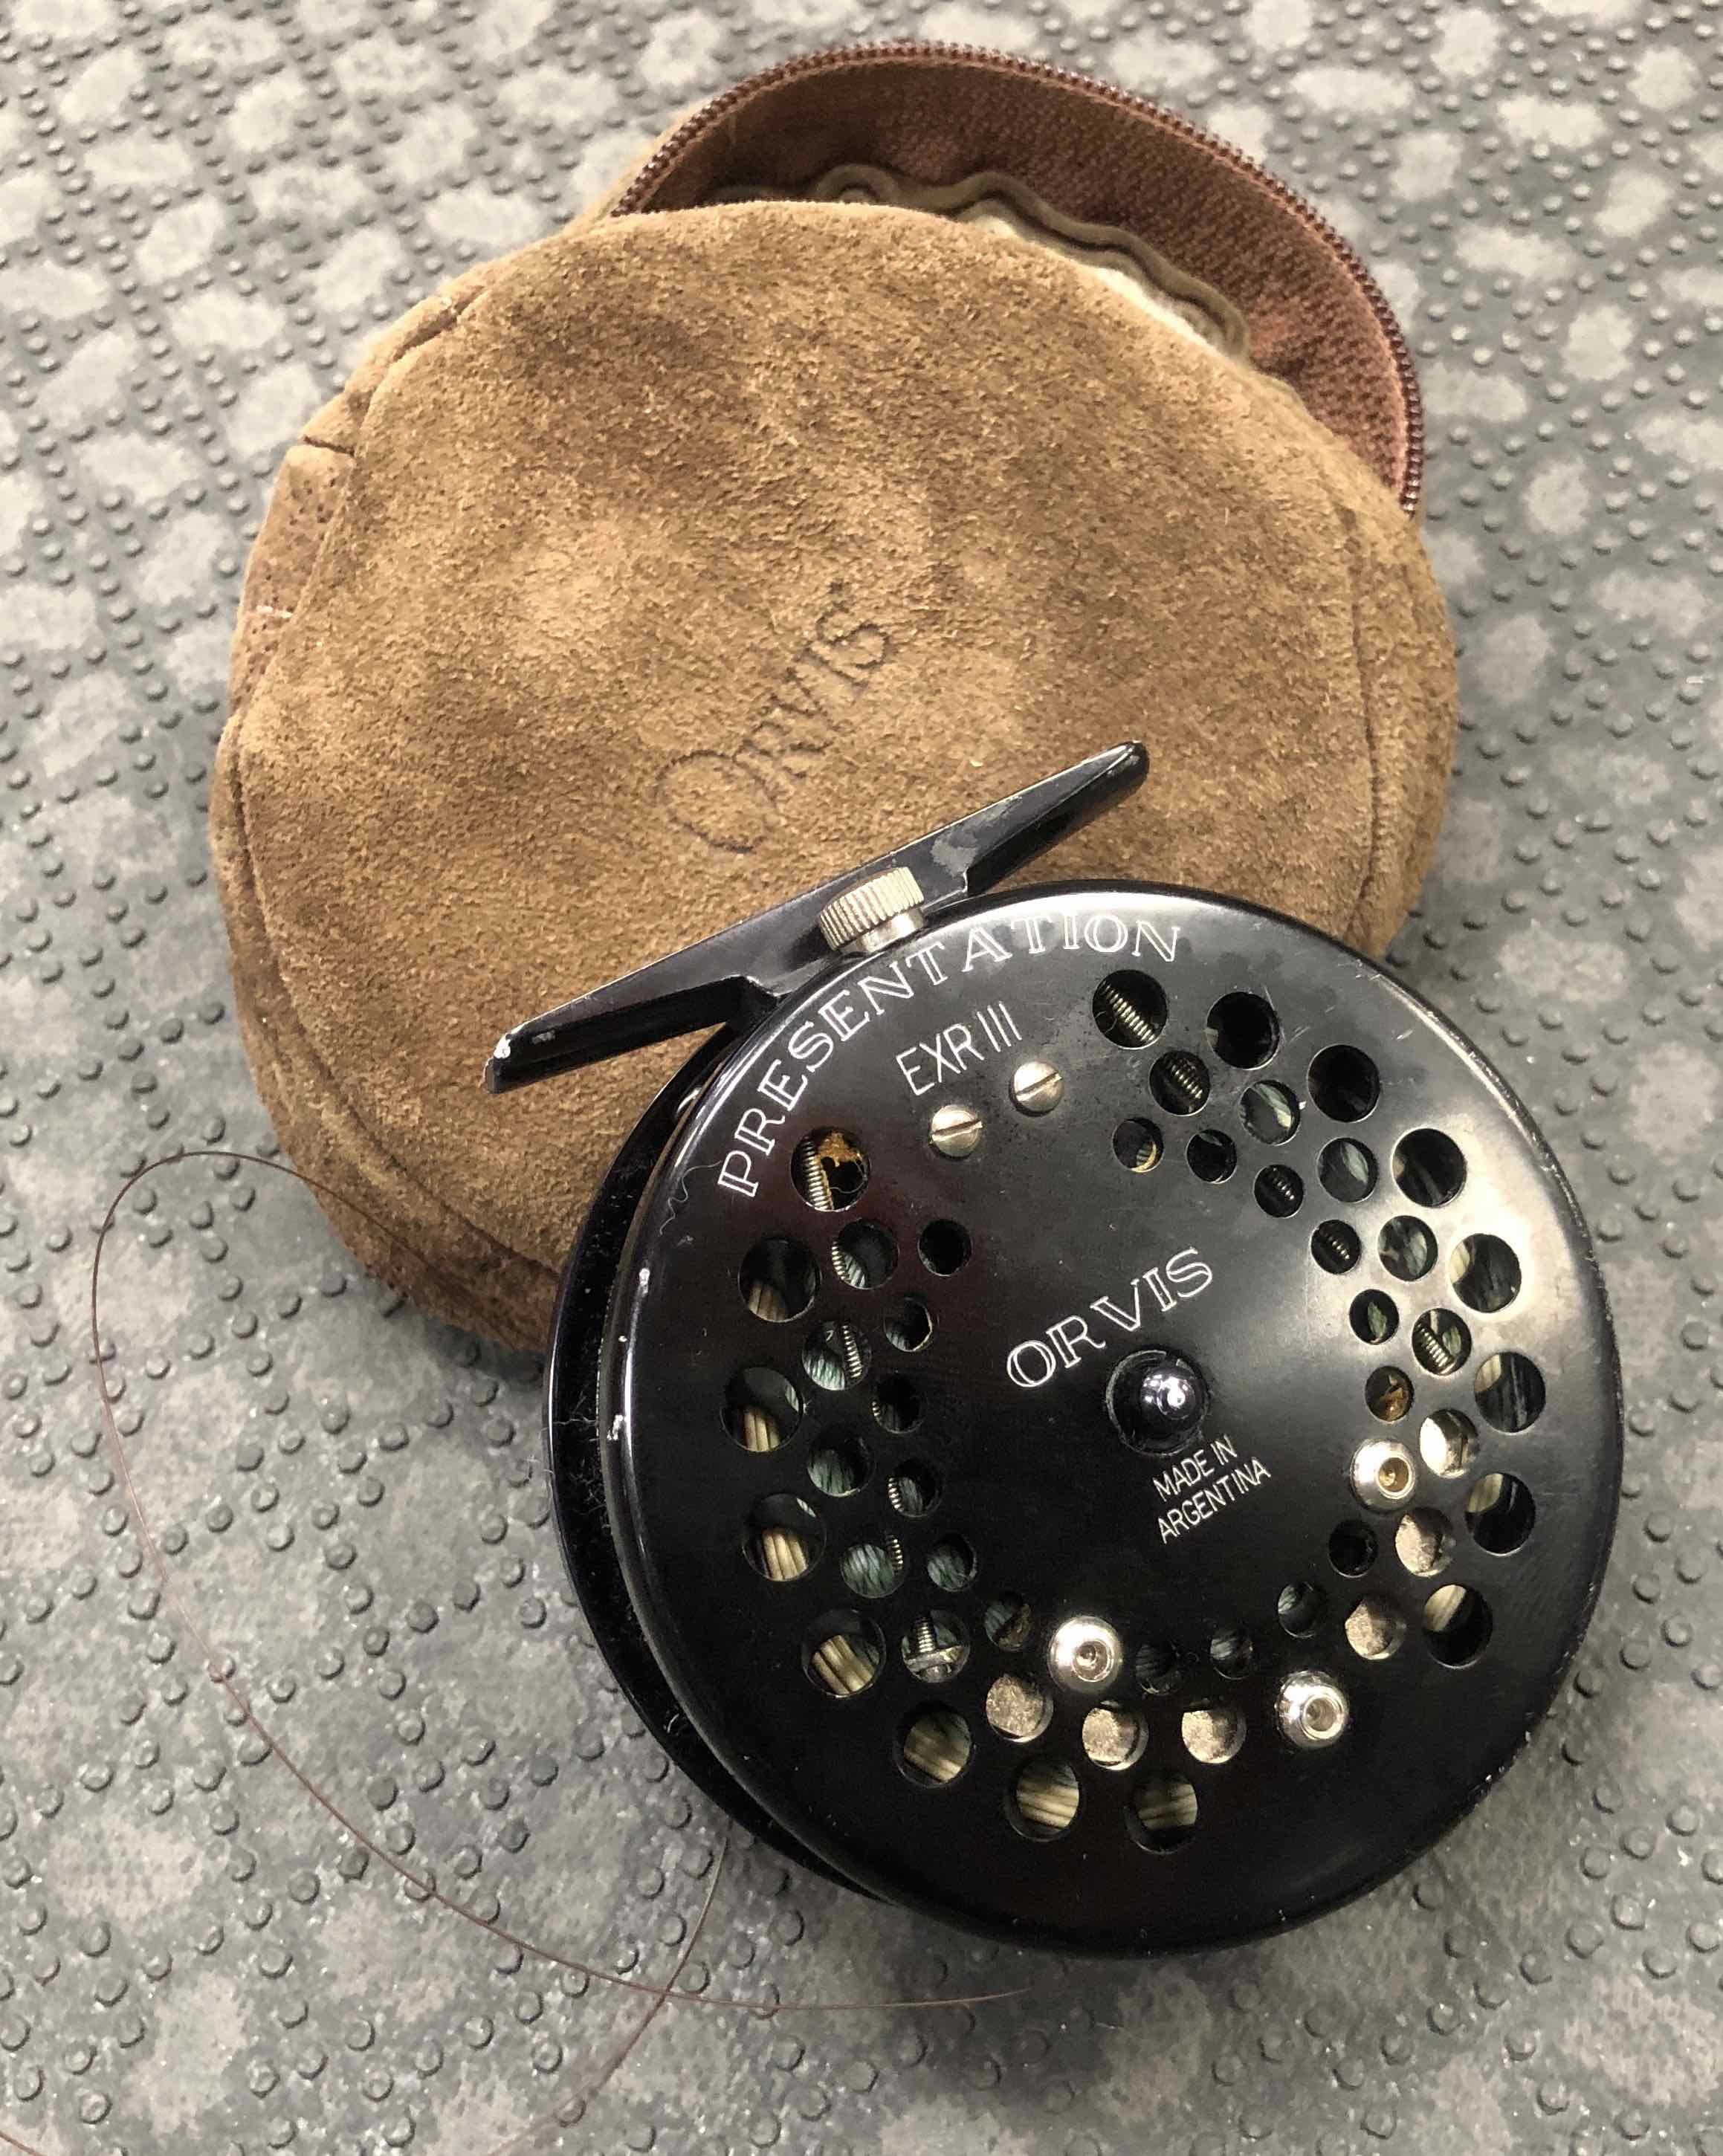 Orvis Presentation Fly Reel - EXR III - Made in Argentina - C/W A RIO Sinking Fly Line - GREAT SHAPE - $150